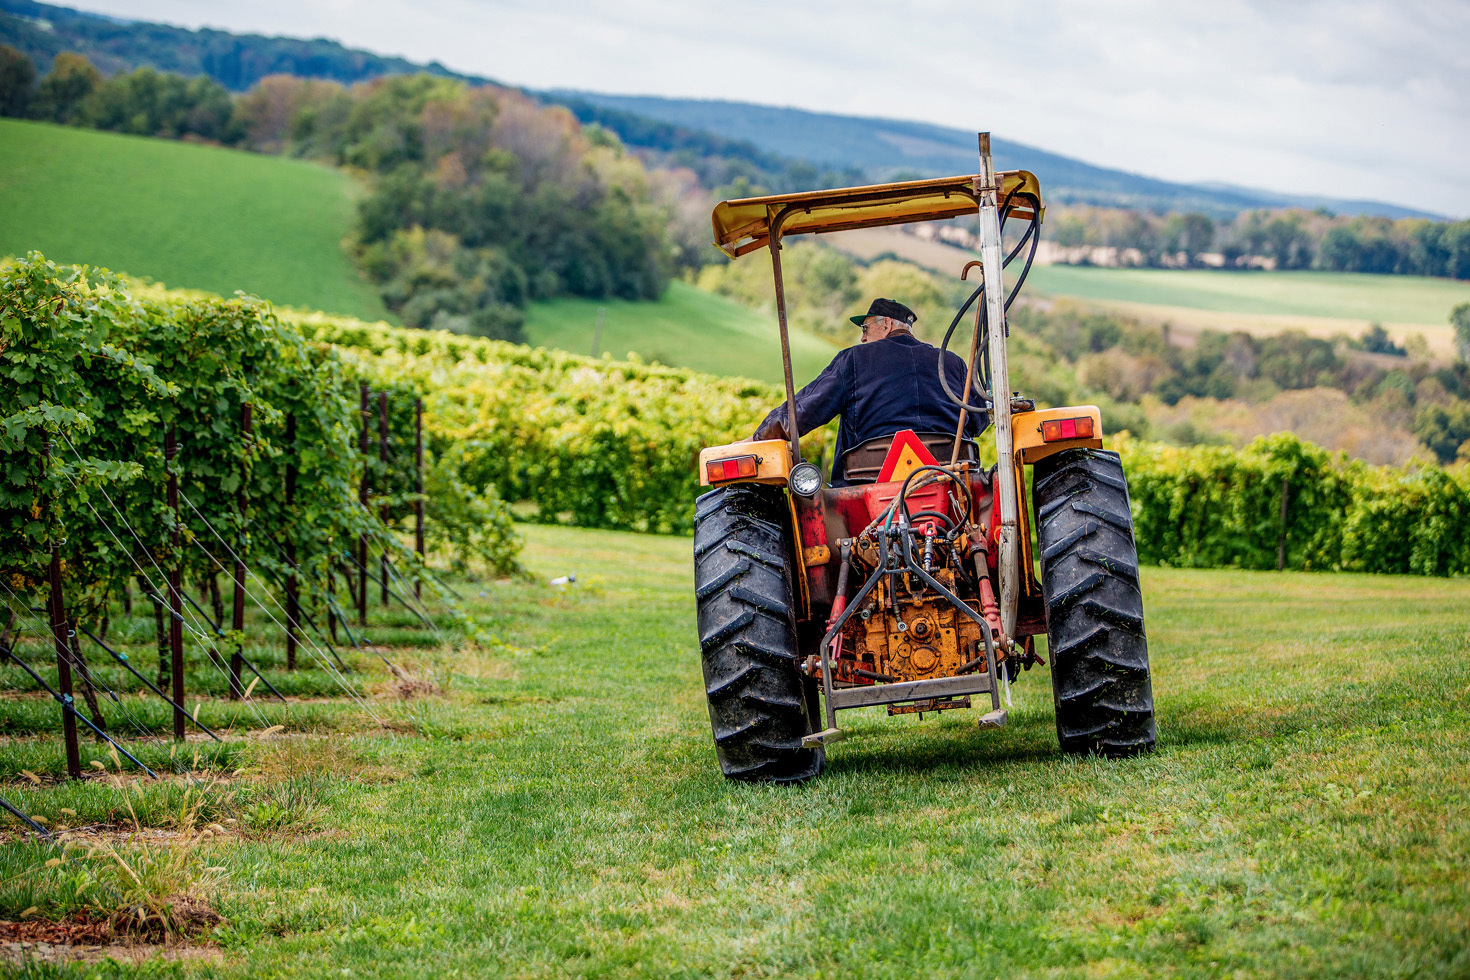 Calvin J Troxell, a fifth generation farmer at Galen Glen Winery in Andreas, PA brings bins of wine from the vineyard to crush for harvest. (Courtesy of Galen Glen Winery)